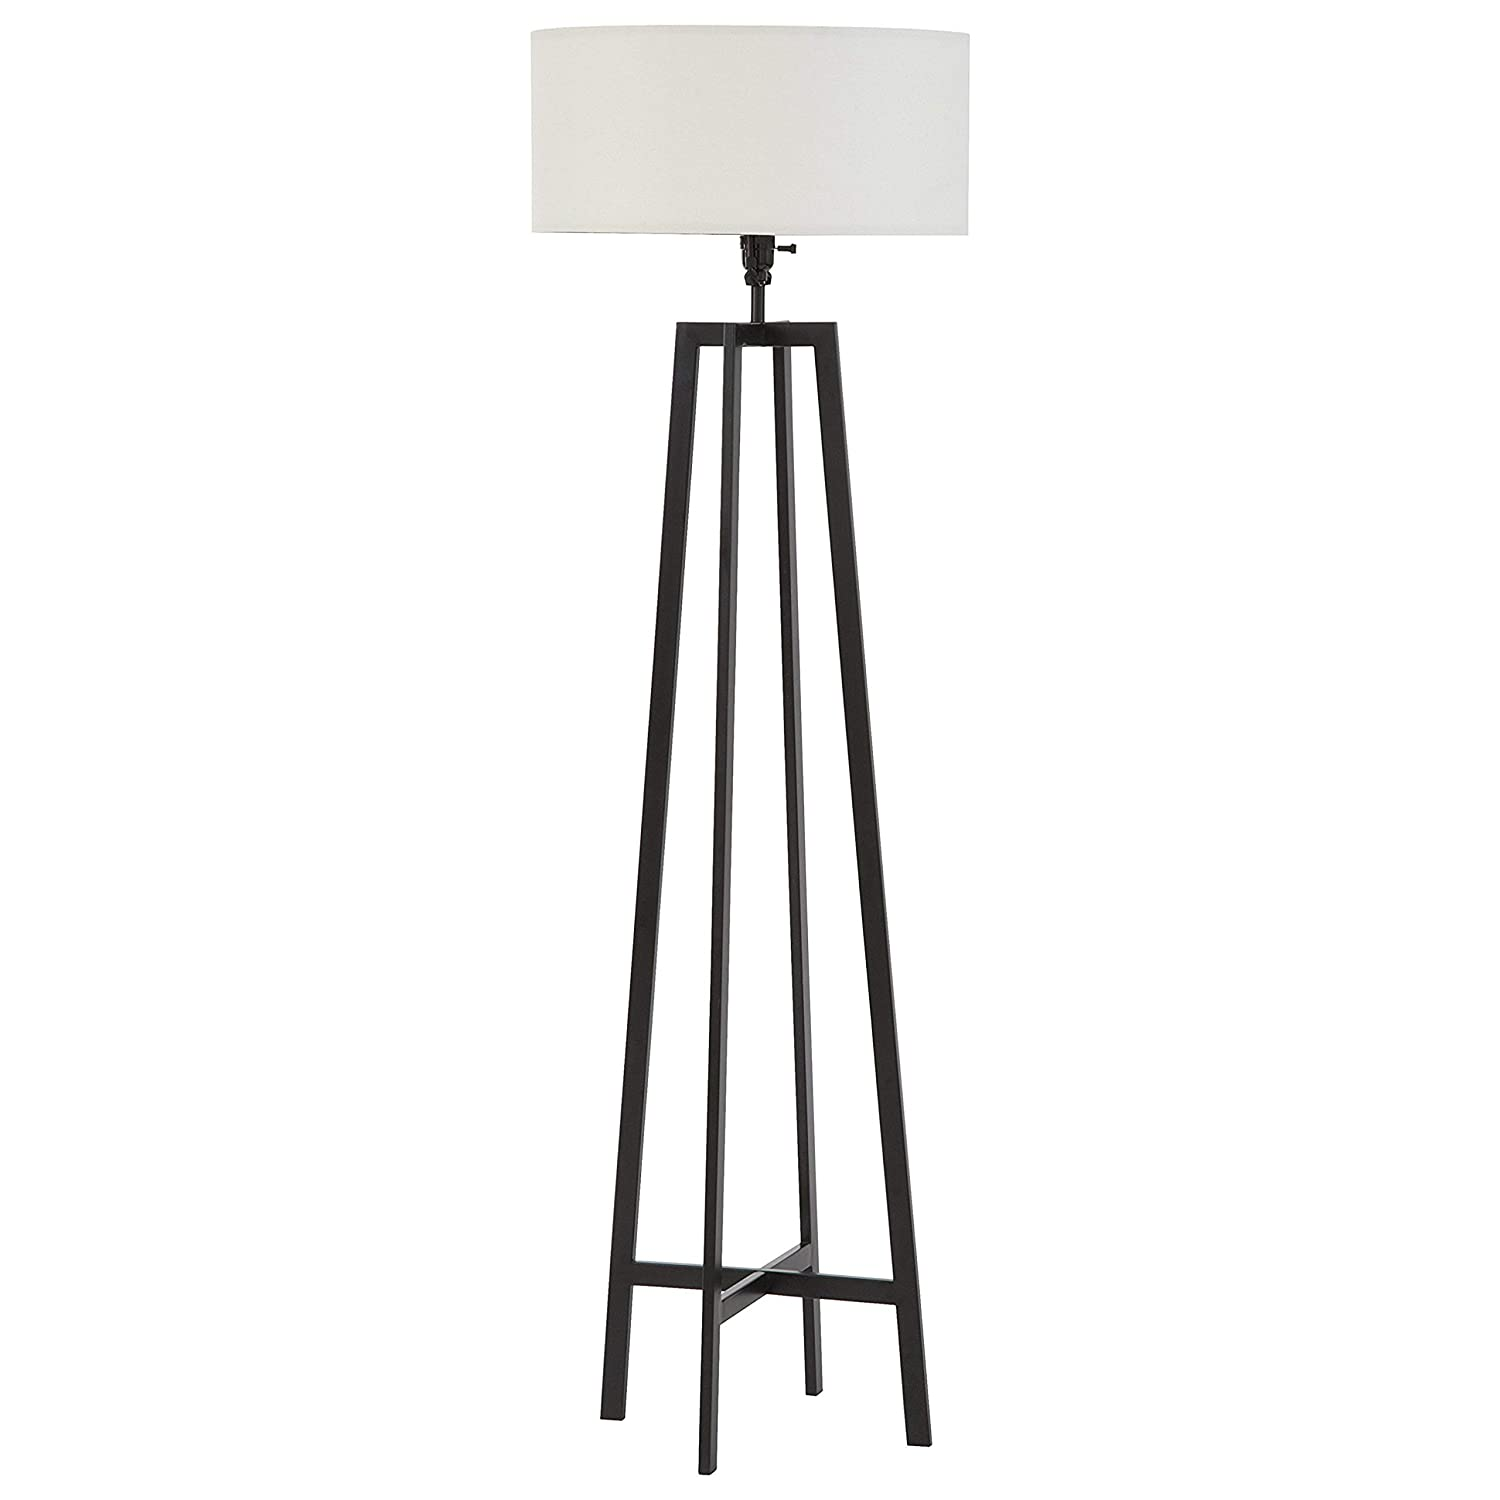 Stone Beam Deco Metal Frame Living Room Standing Floor Lamp With Light Bulb and White Shade – 18 x 18 x 59.5 Inches, Black